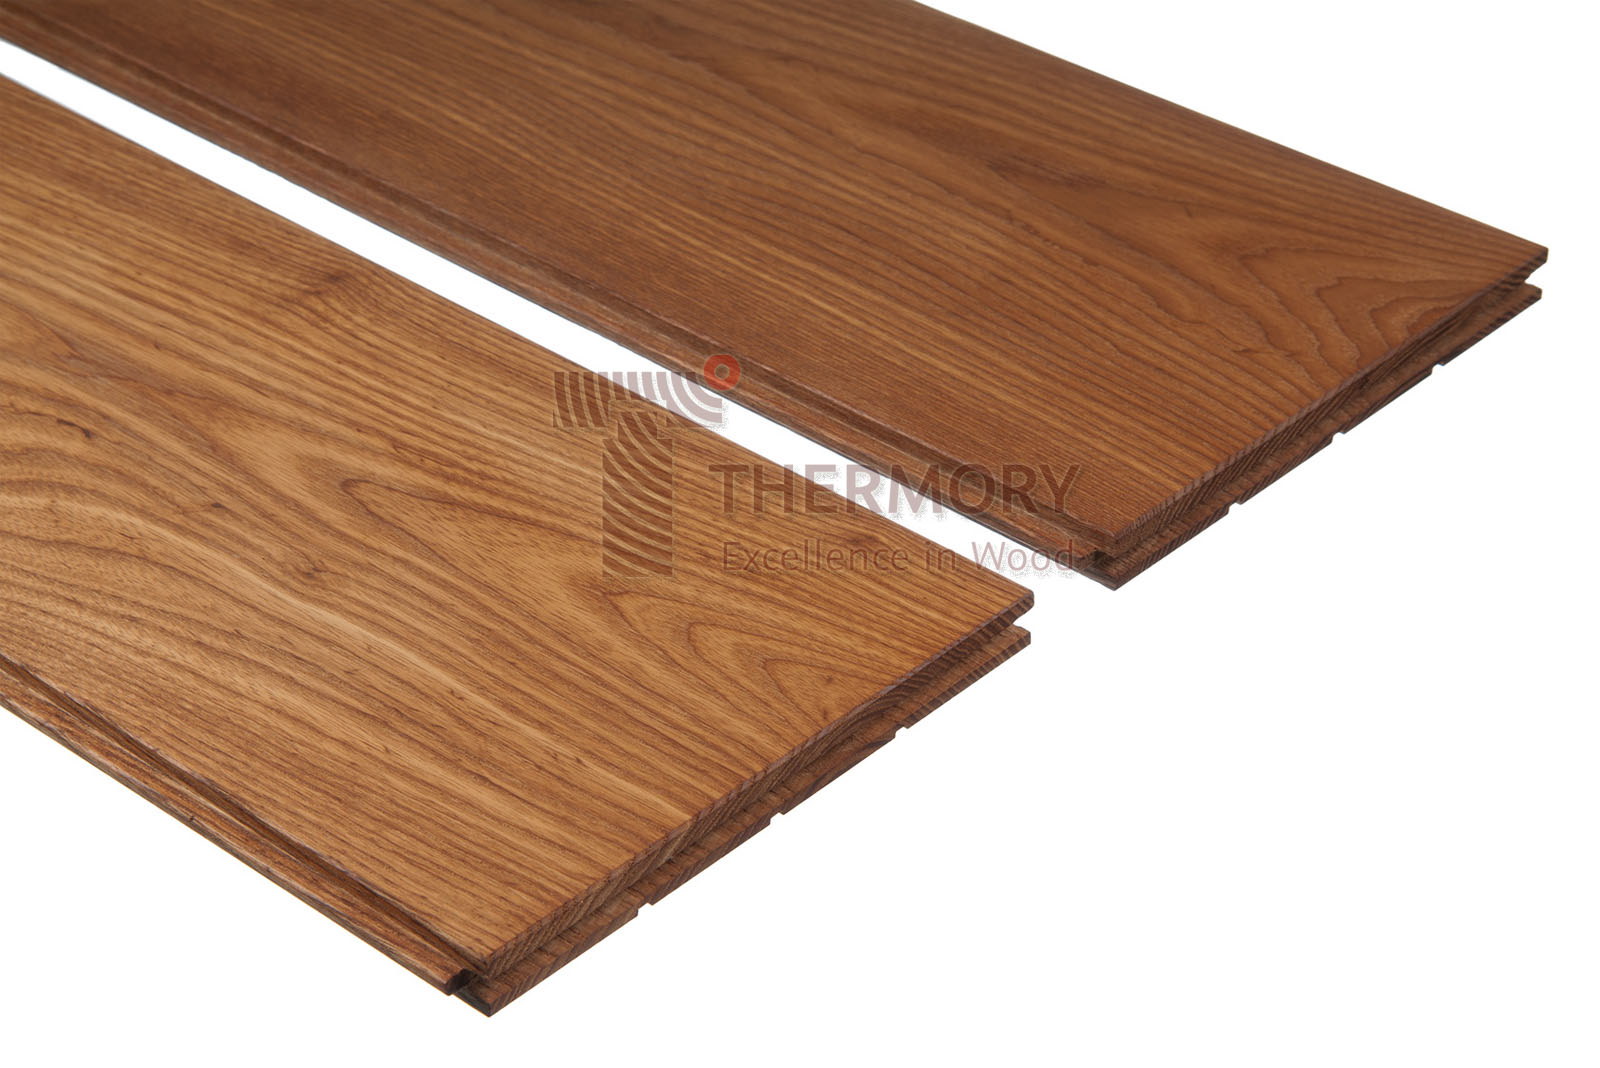 F2 18x150/190mm21x150mm** - This is a classic profile with no additional fitting systems required.